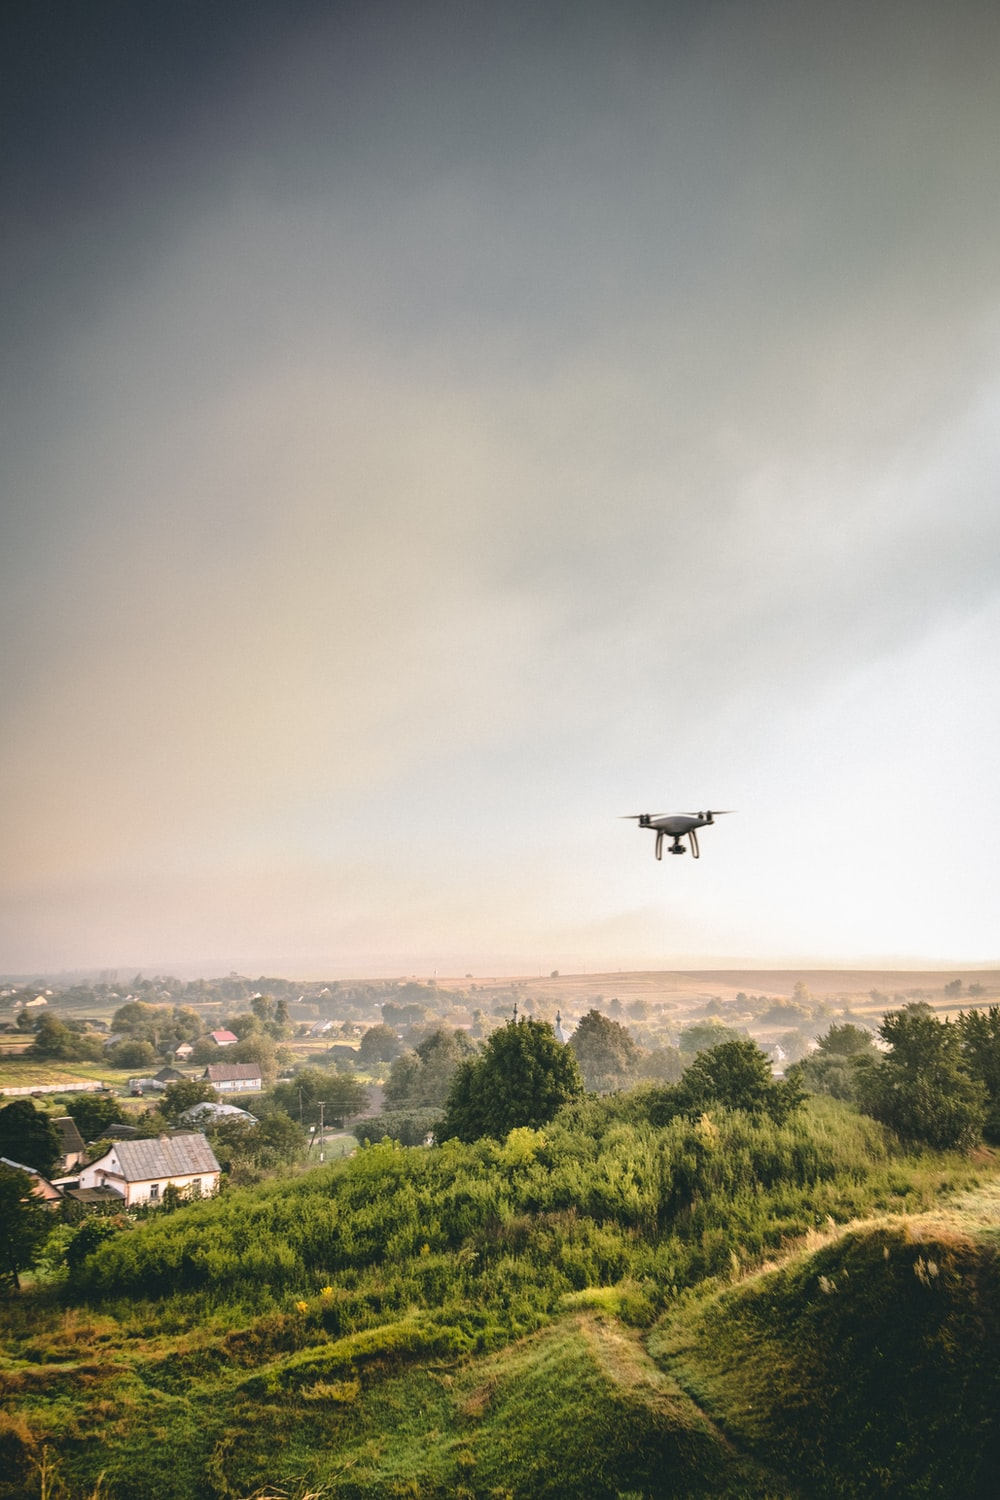 black drone flying over green trees and buildings during daytime